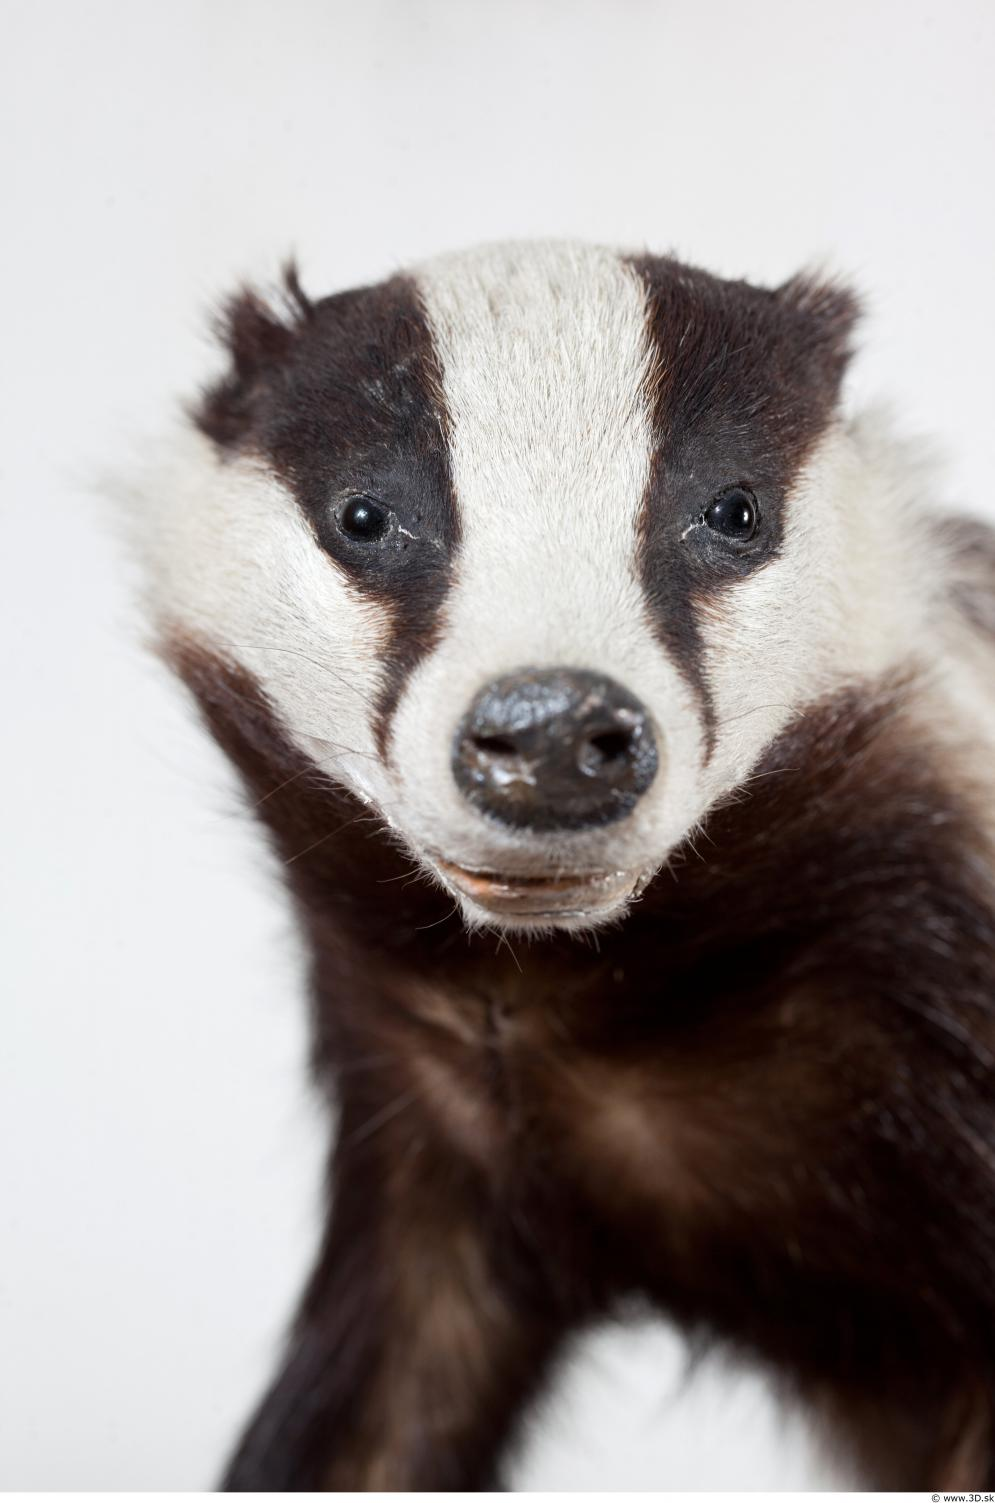 Image from Free Samples / May 2018 - 0161_badger_head_photo_reference_0001.jpg